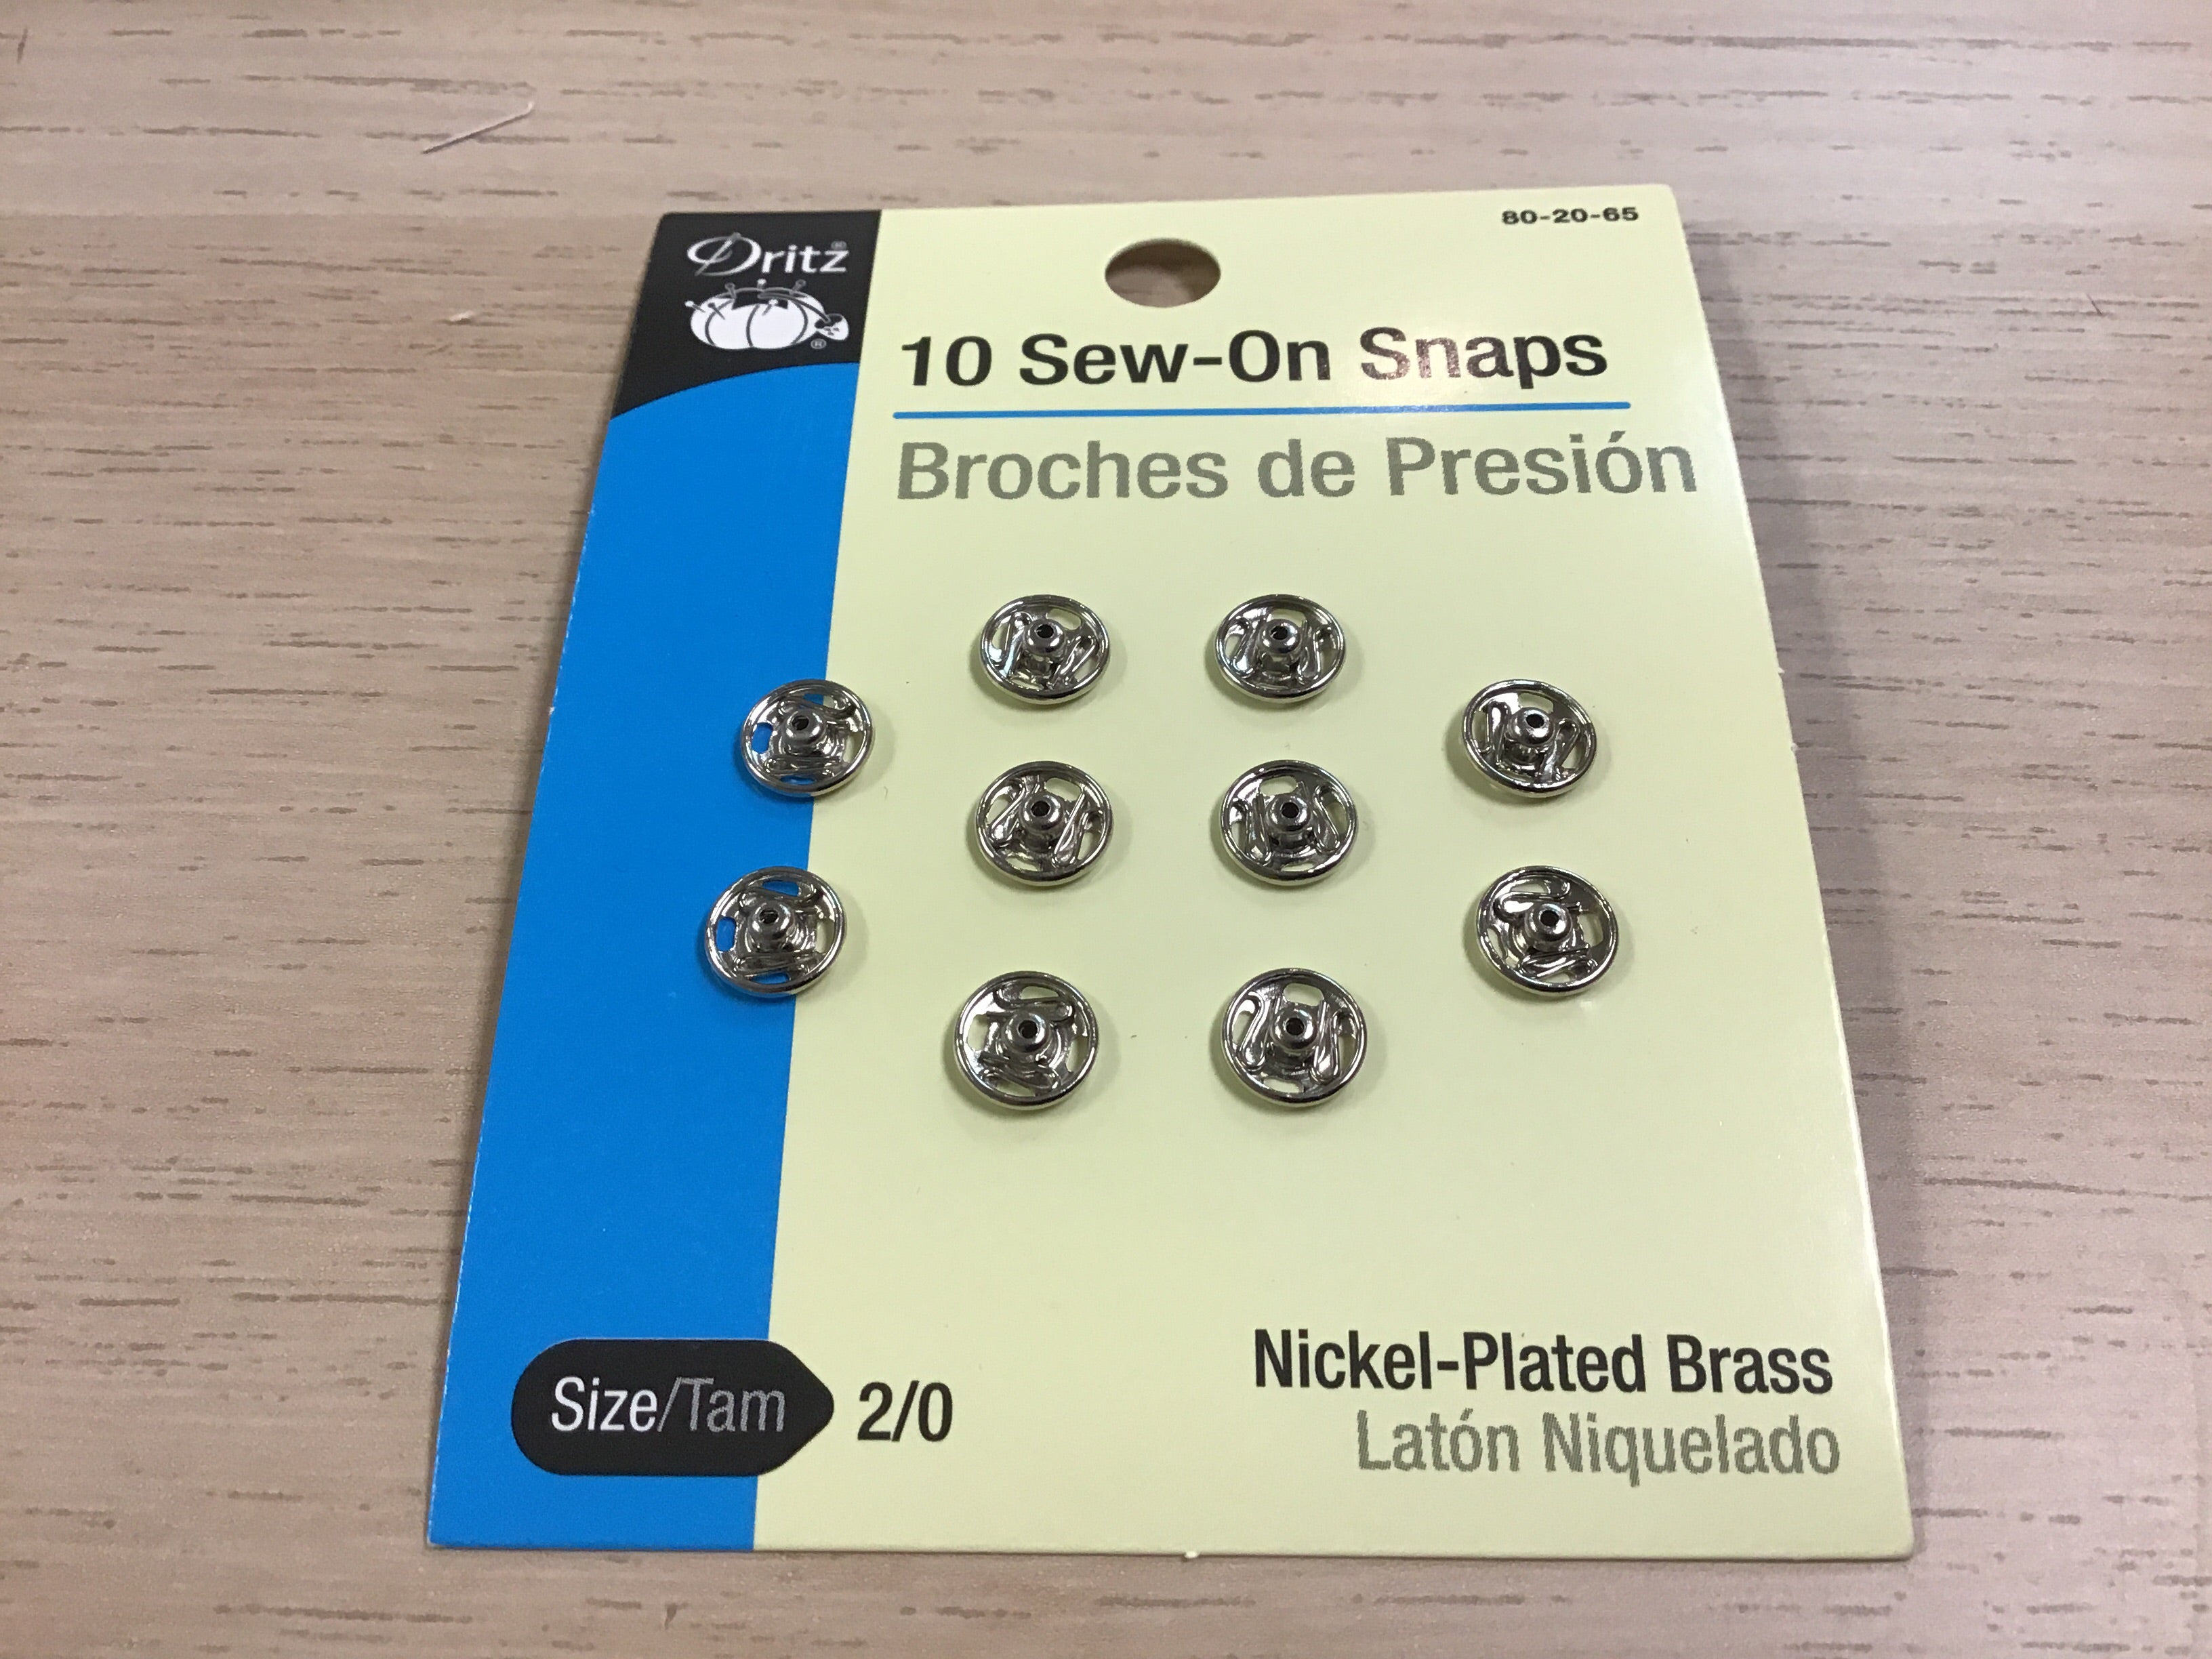 Sew-On-Snaps - set of 10